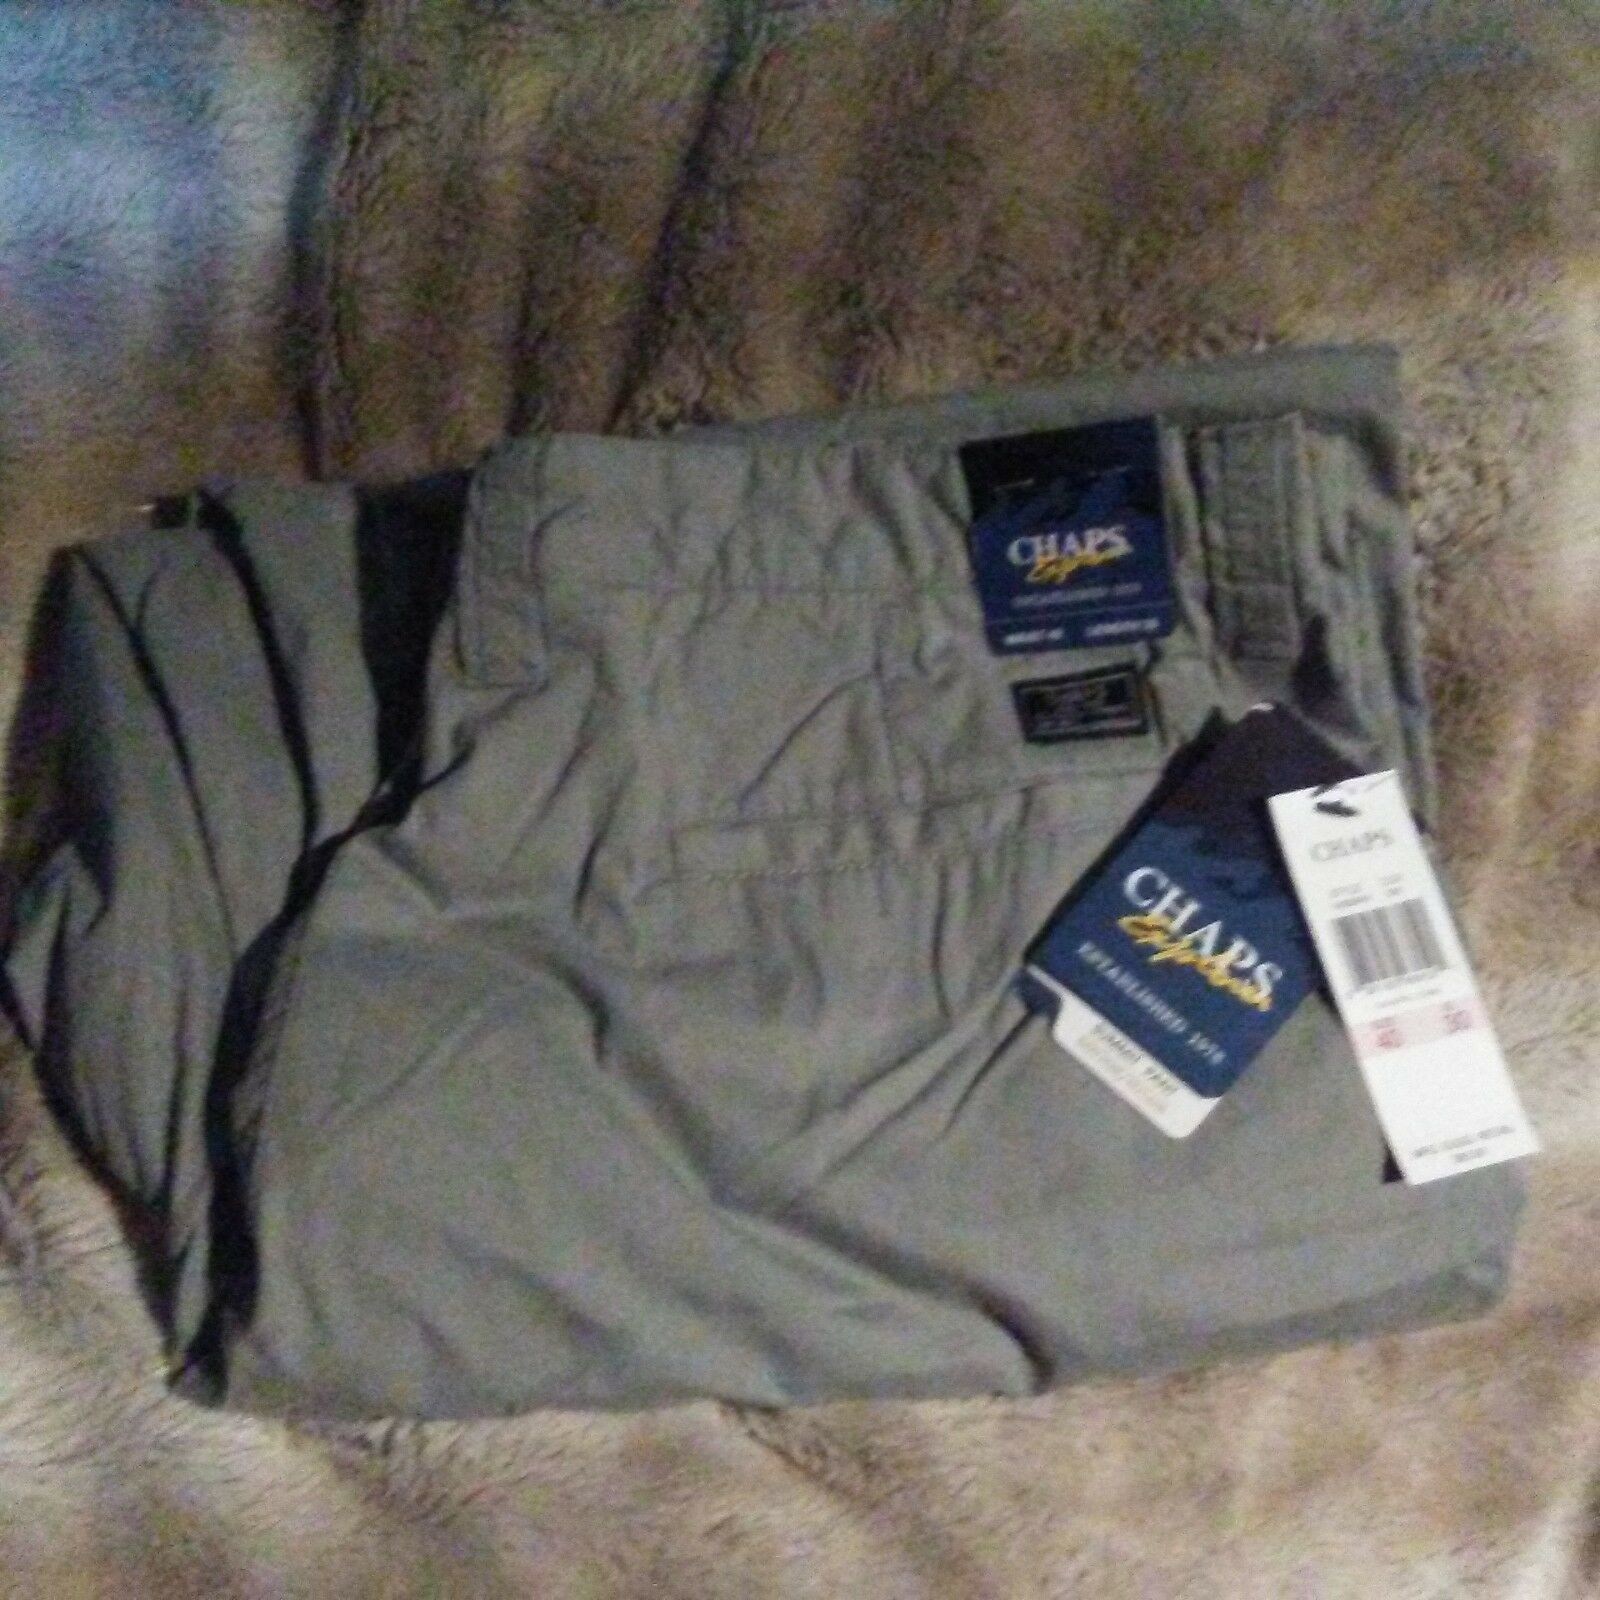 Chaps Explorer Summit Pants Cotton Nylon 40x30 New With Tags Light Grey